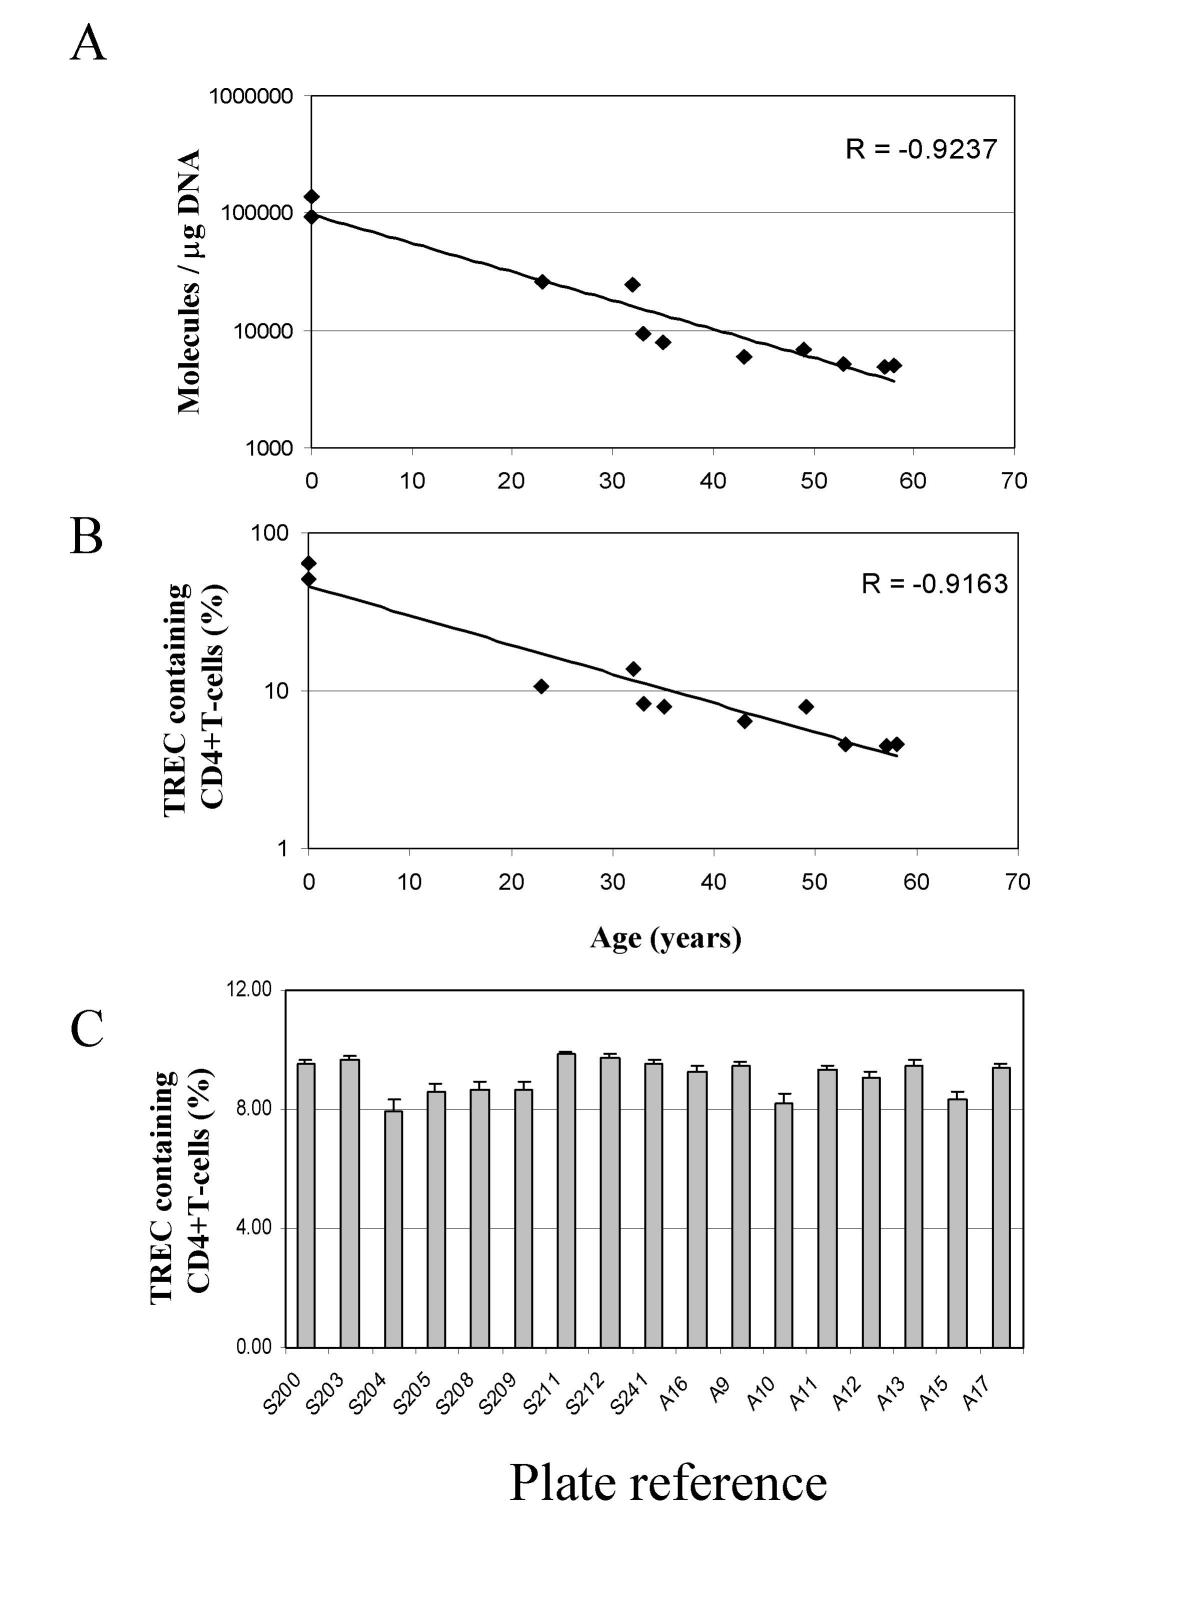 http://static-content.springer.com/image/art%3A10.1186%2F1472-6750-3-18/MediaObjects/12896_2003_Article_52_Fig4_HTML.jpg